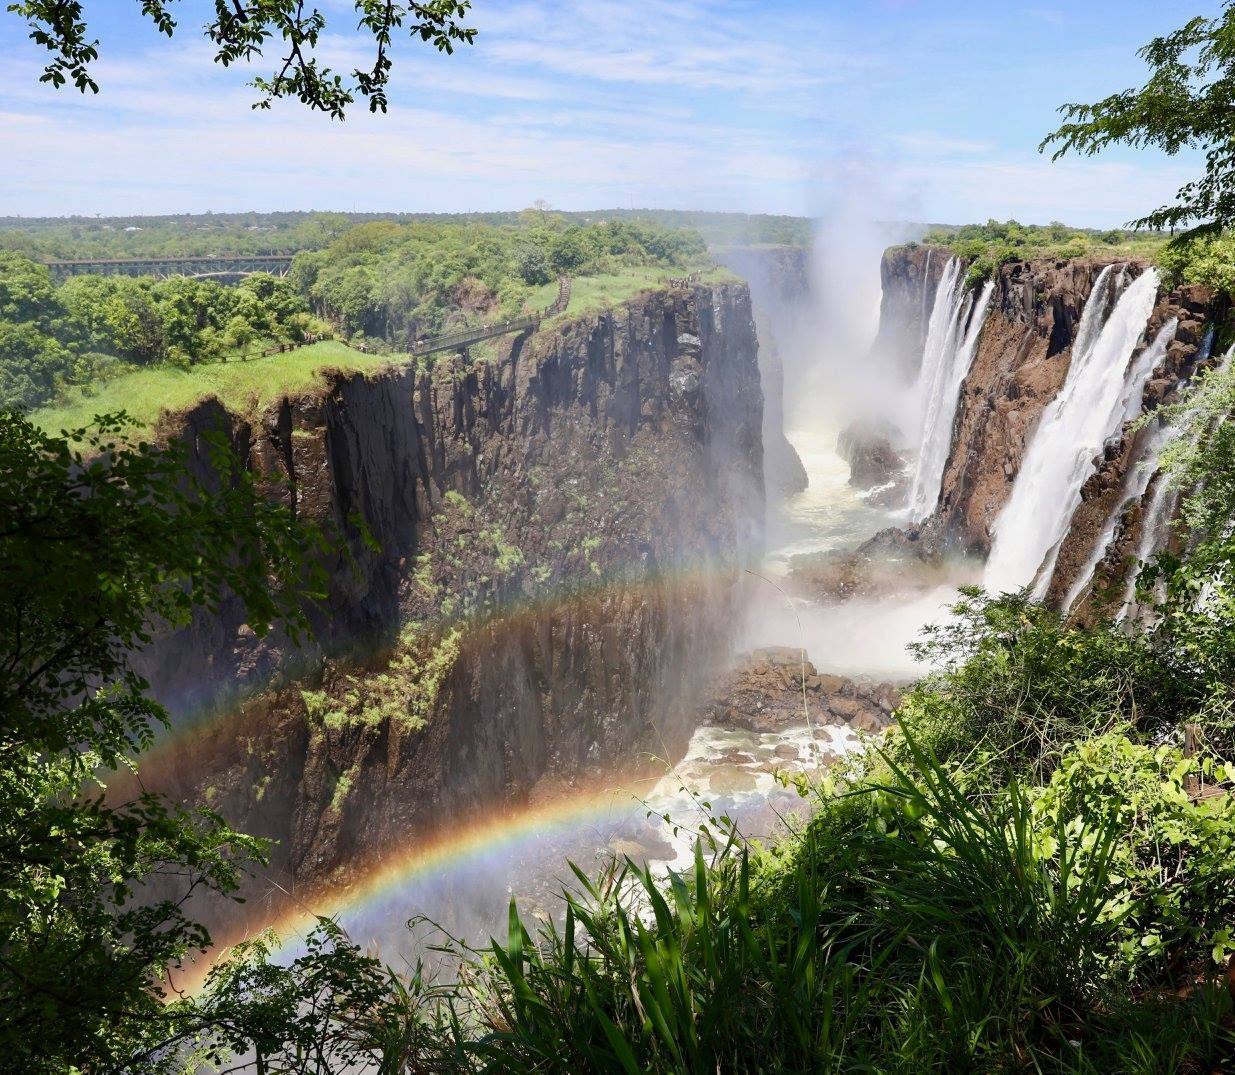 Guest Natalie Borrok Harder Travelled With Us Over The December Holidays Starting At The Wonder That Is Mosi Oa Travel Photography African Travel Photography